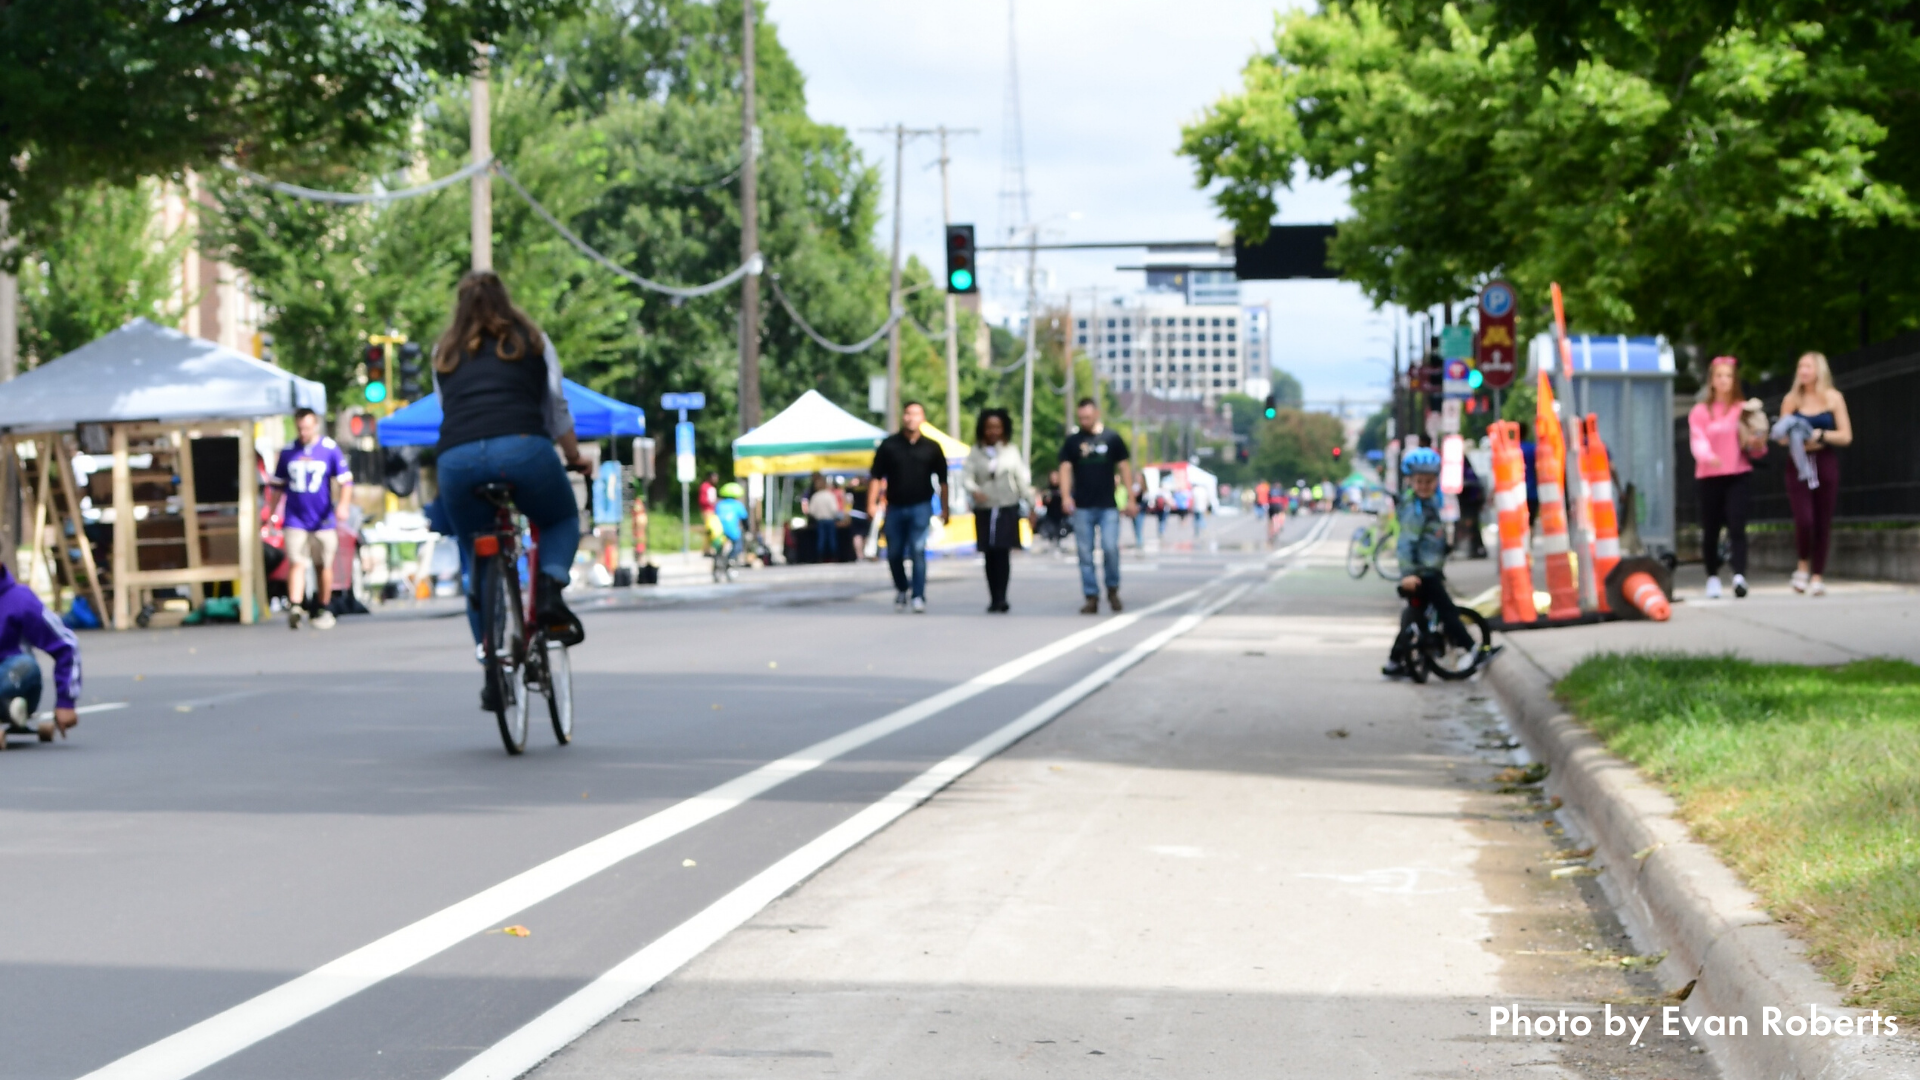 A photo of an Open Streets Minneapolis event taken at a low angle. In the foreground is a painted bike lane, in the background there are people biking & walking